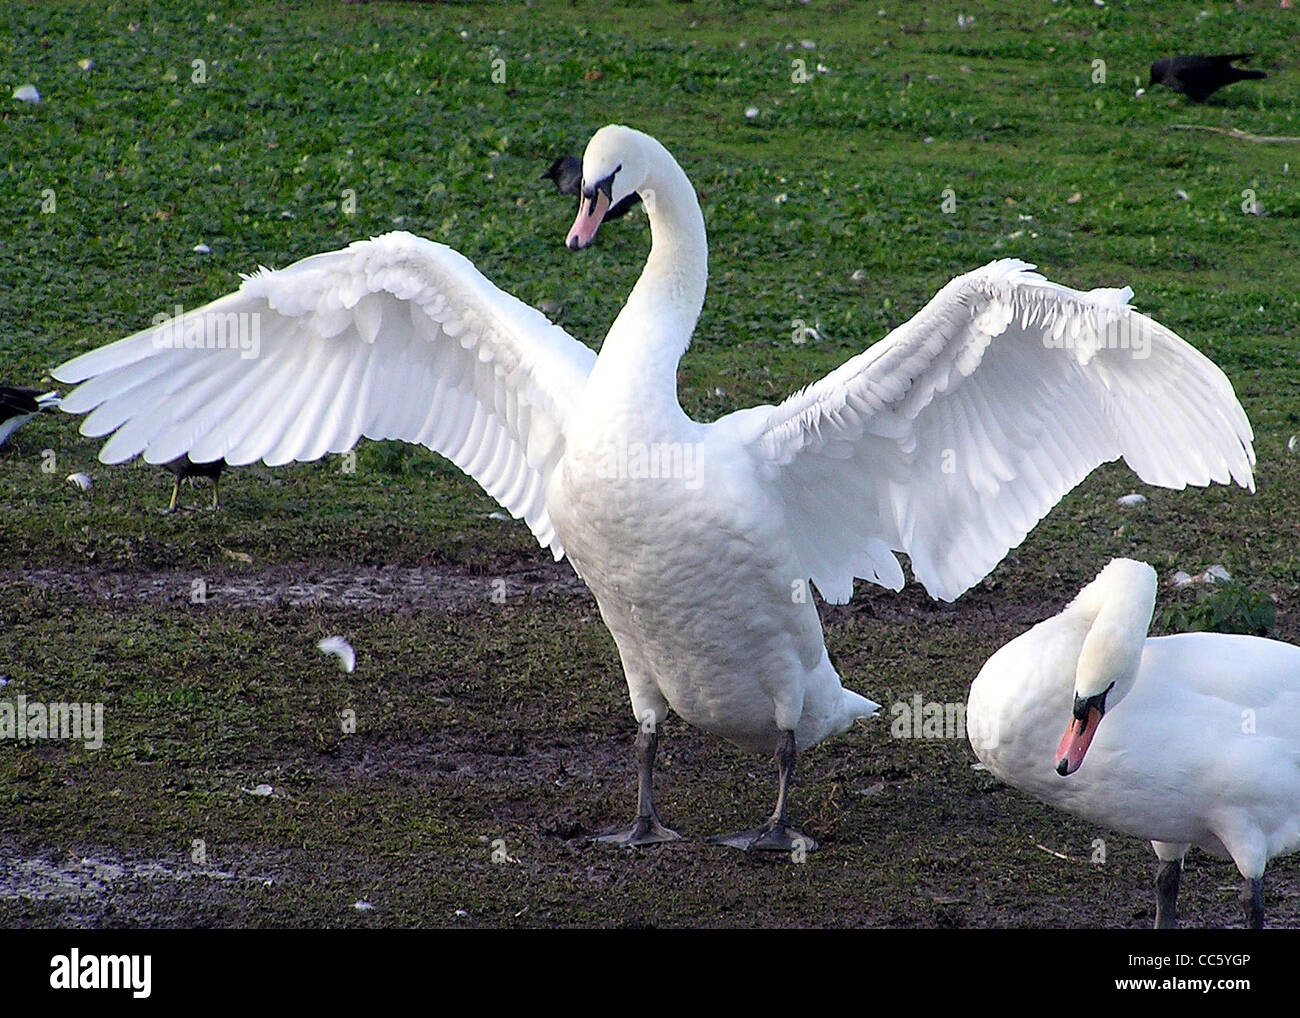 A swan spreads its wings at Slimbridge Wildfowl & Wetlands Centre, Slimbridge, Gloucestershire, England. Stock Photo